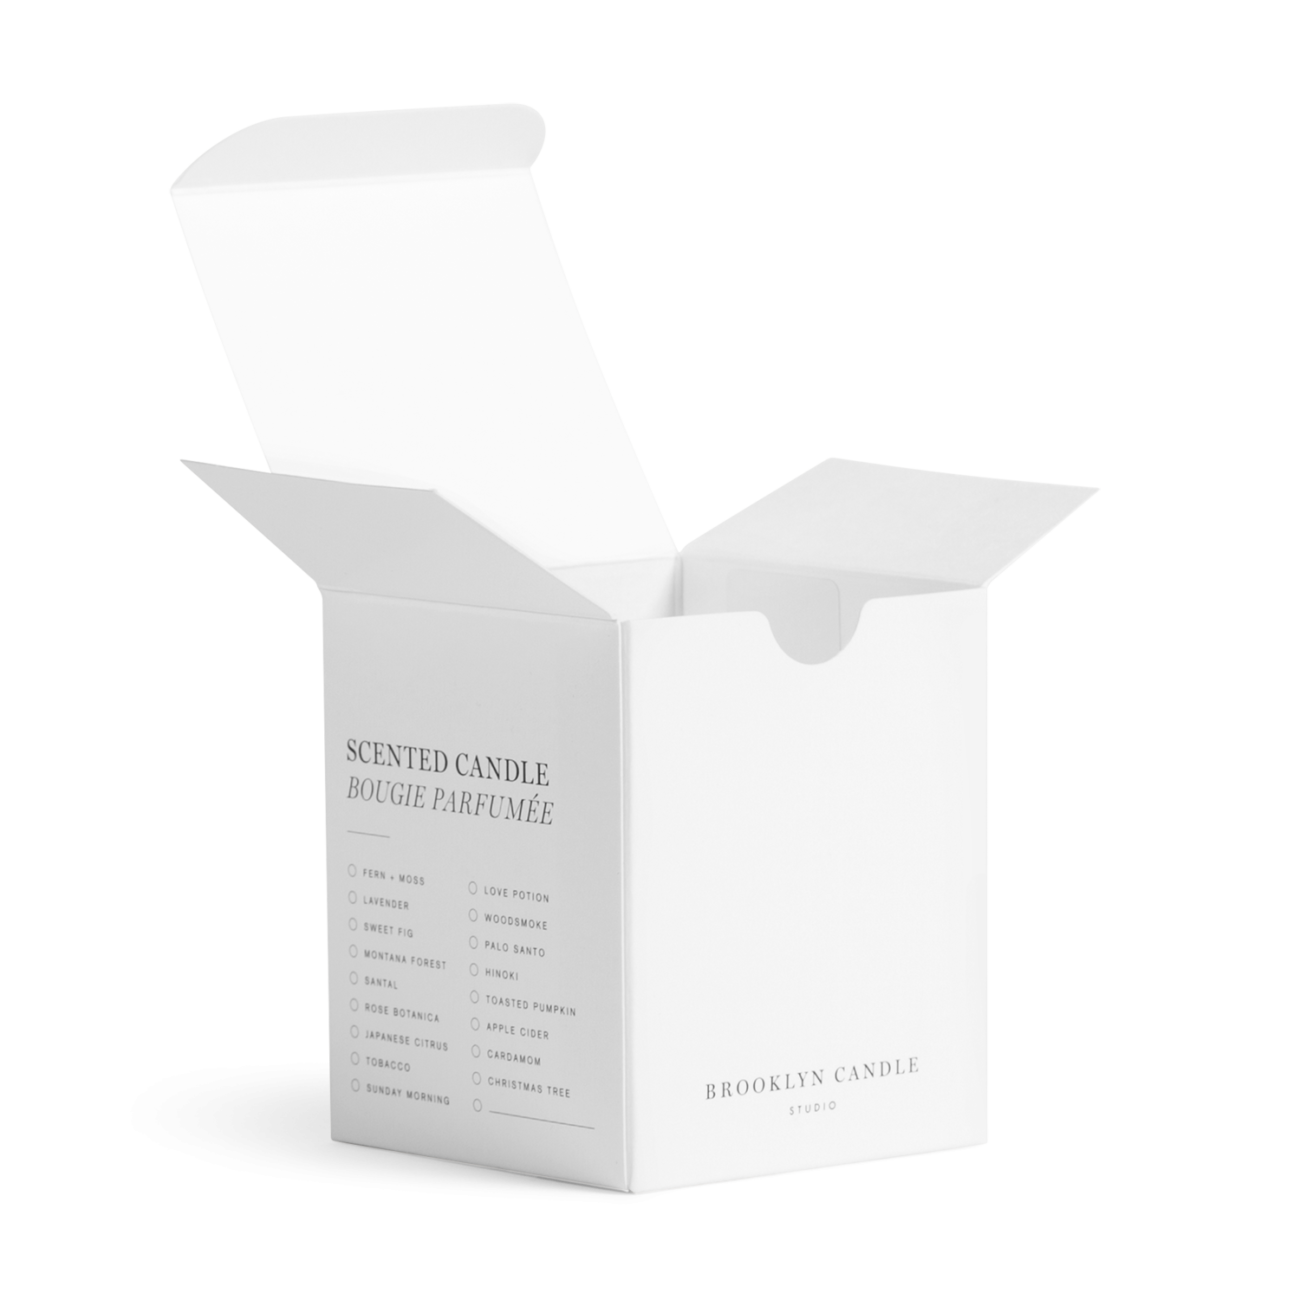 Custom tuck top autobottom folding carton box with thumb notch. Lithography on solid bleached sulphate.